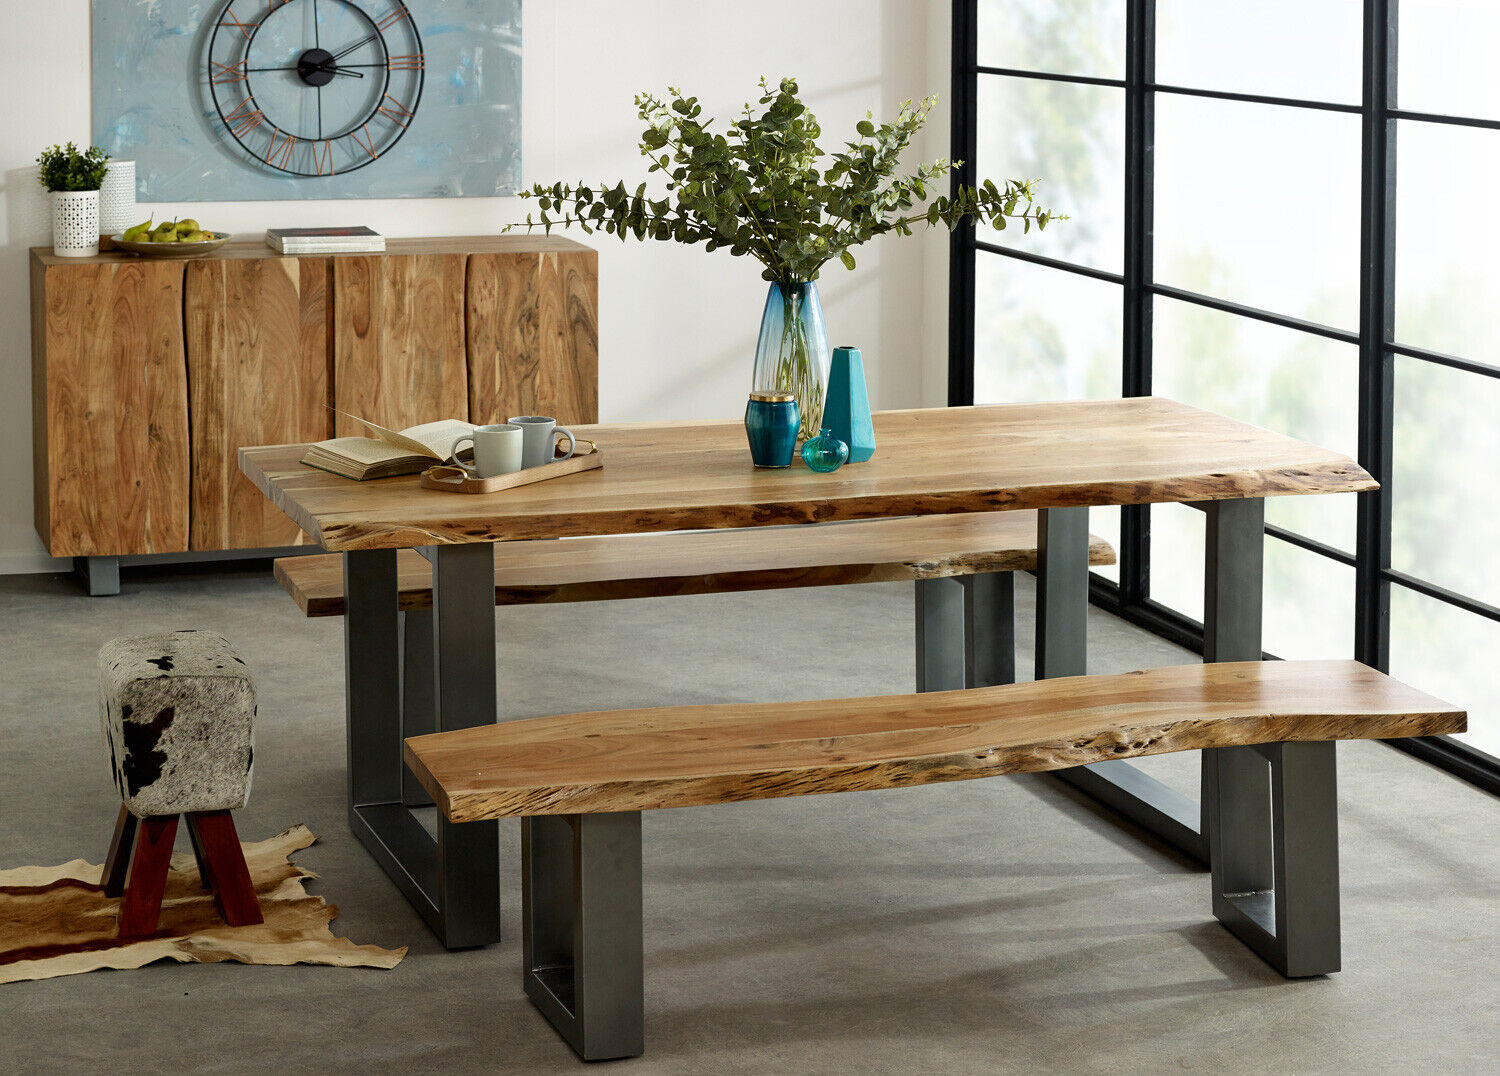 Picture of: Baltic Live Edge Dining Table 2m Solid Wood Acacia Retro Industrial Metal Legs Ebay